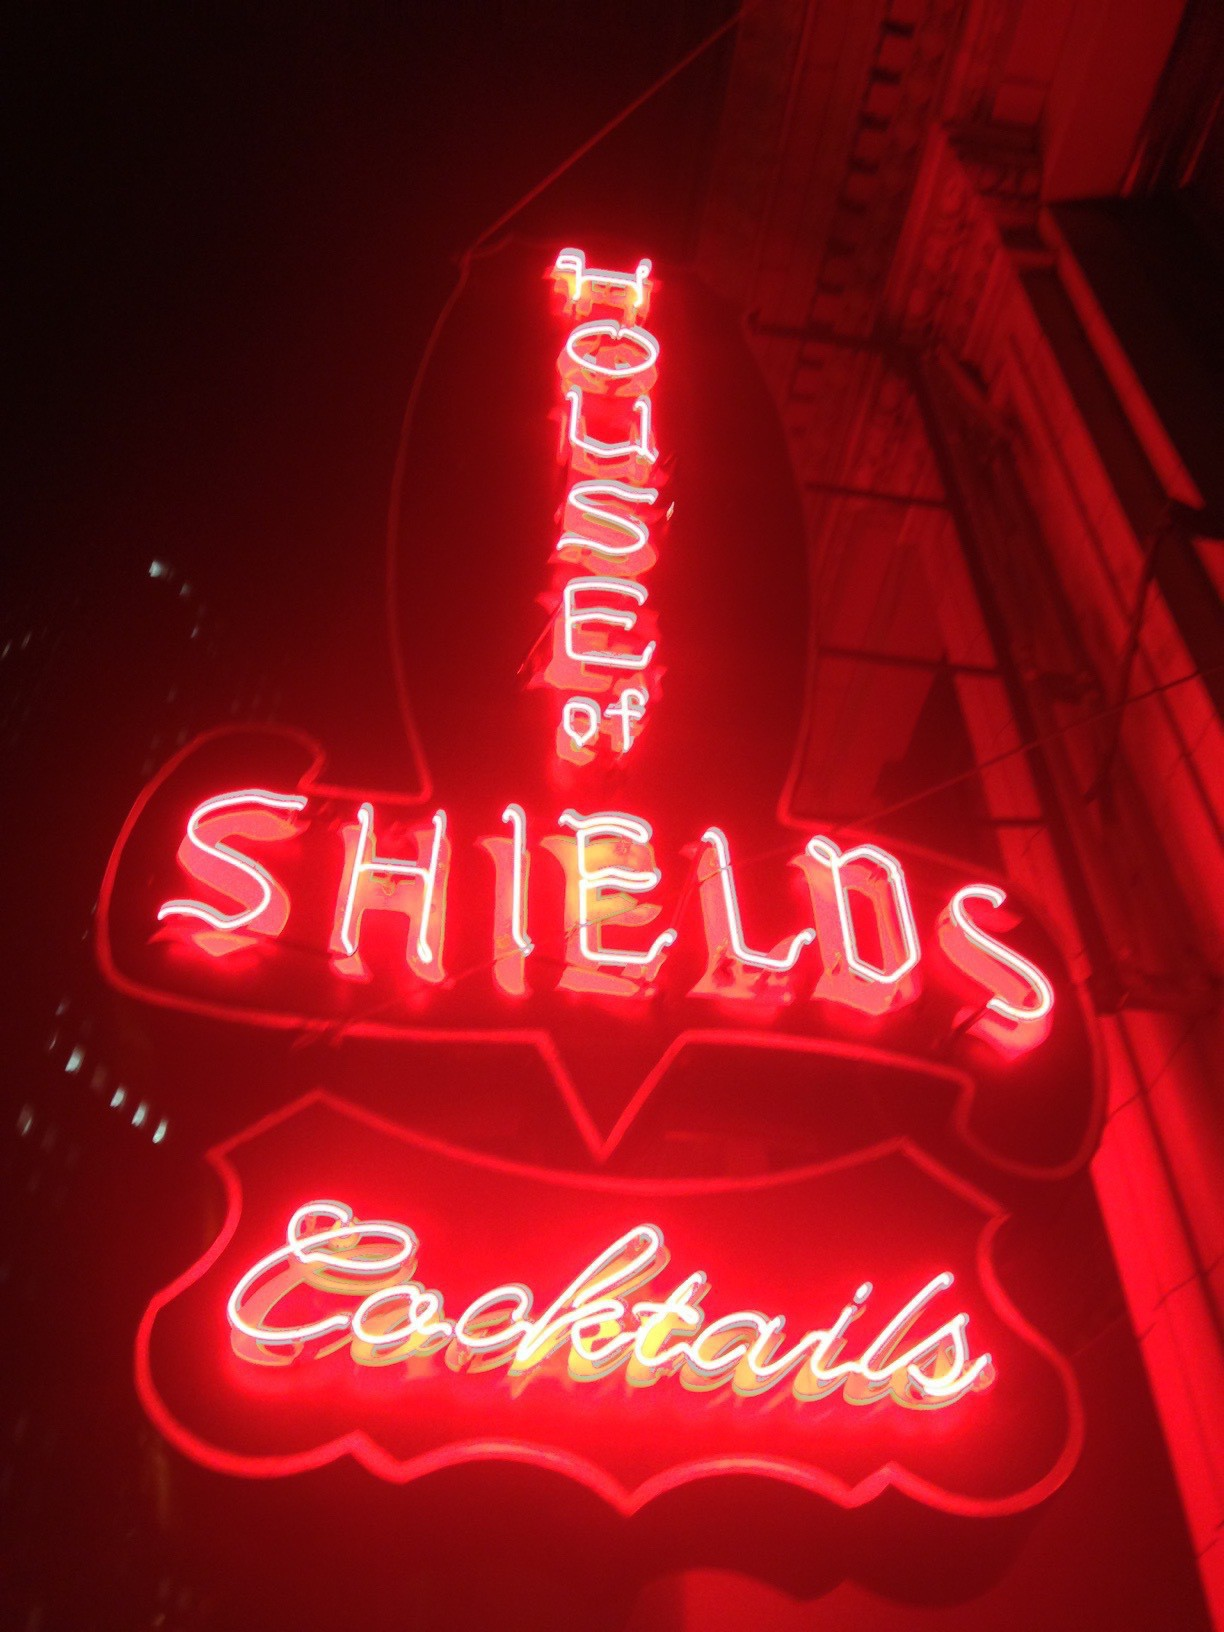 The neon sign out front of the House of Shields